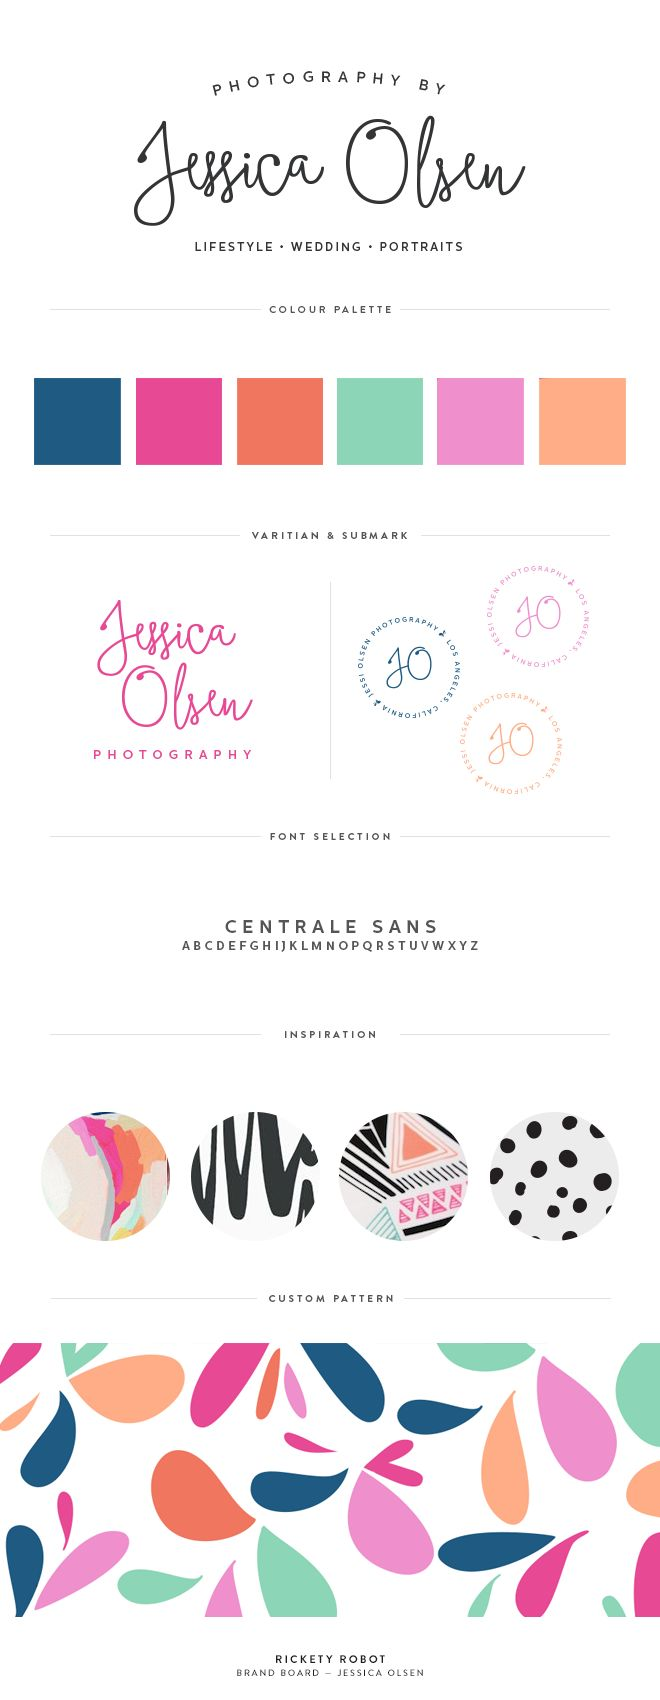 Colorful brand board for Jessica Olsen || Rickey Robot